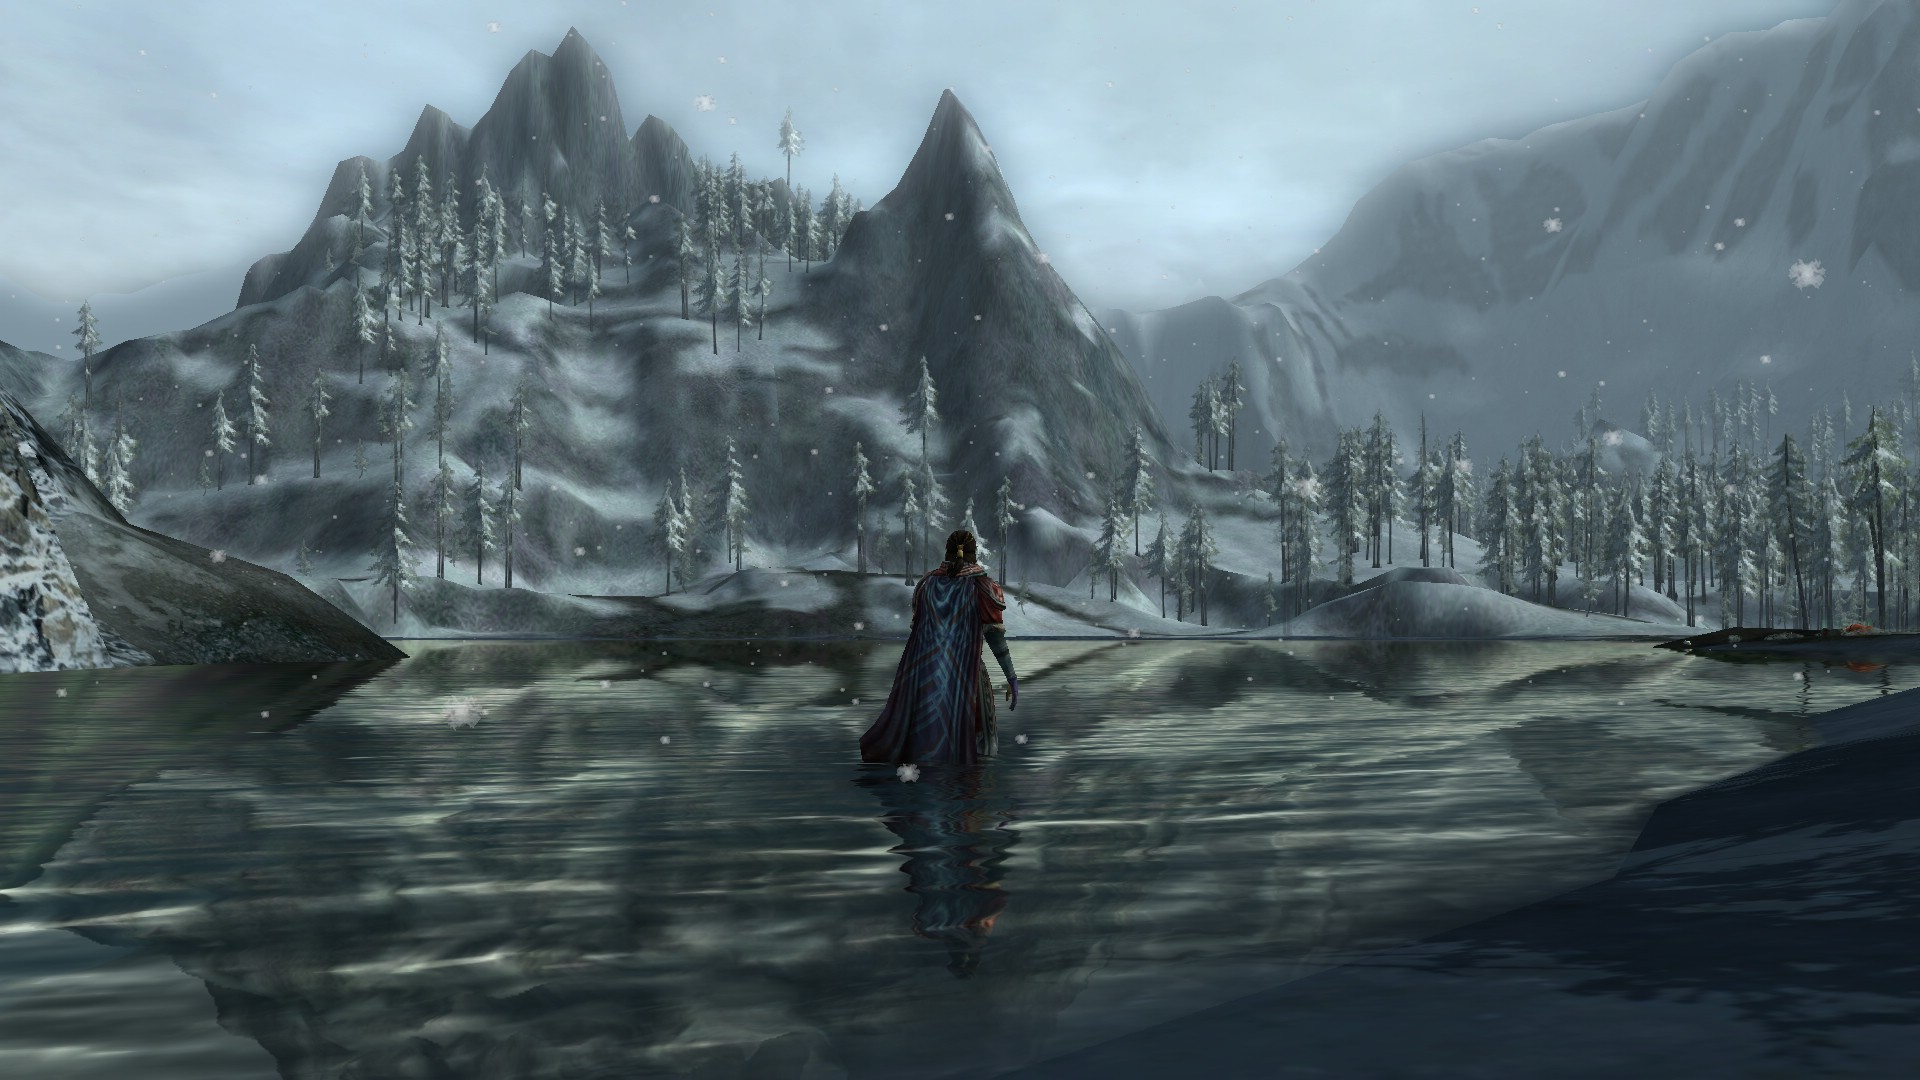 Lord of the Rings Online - Forochel